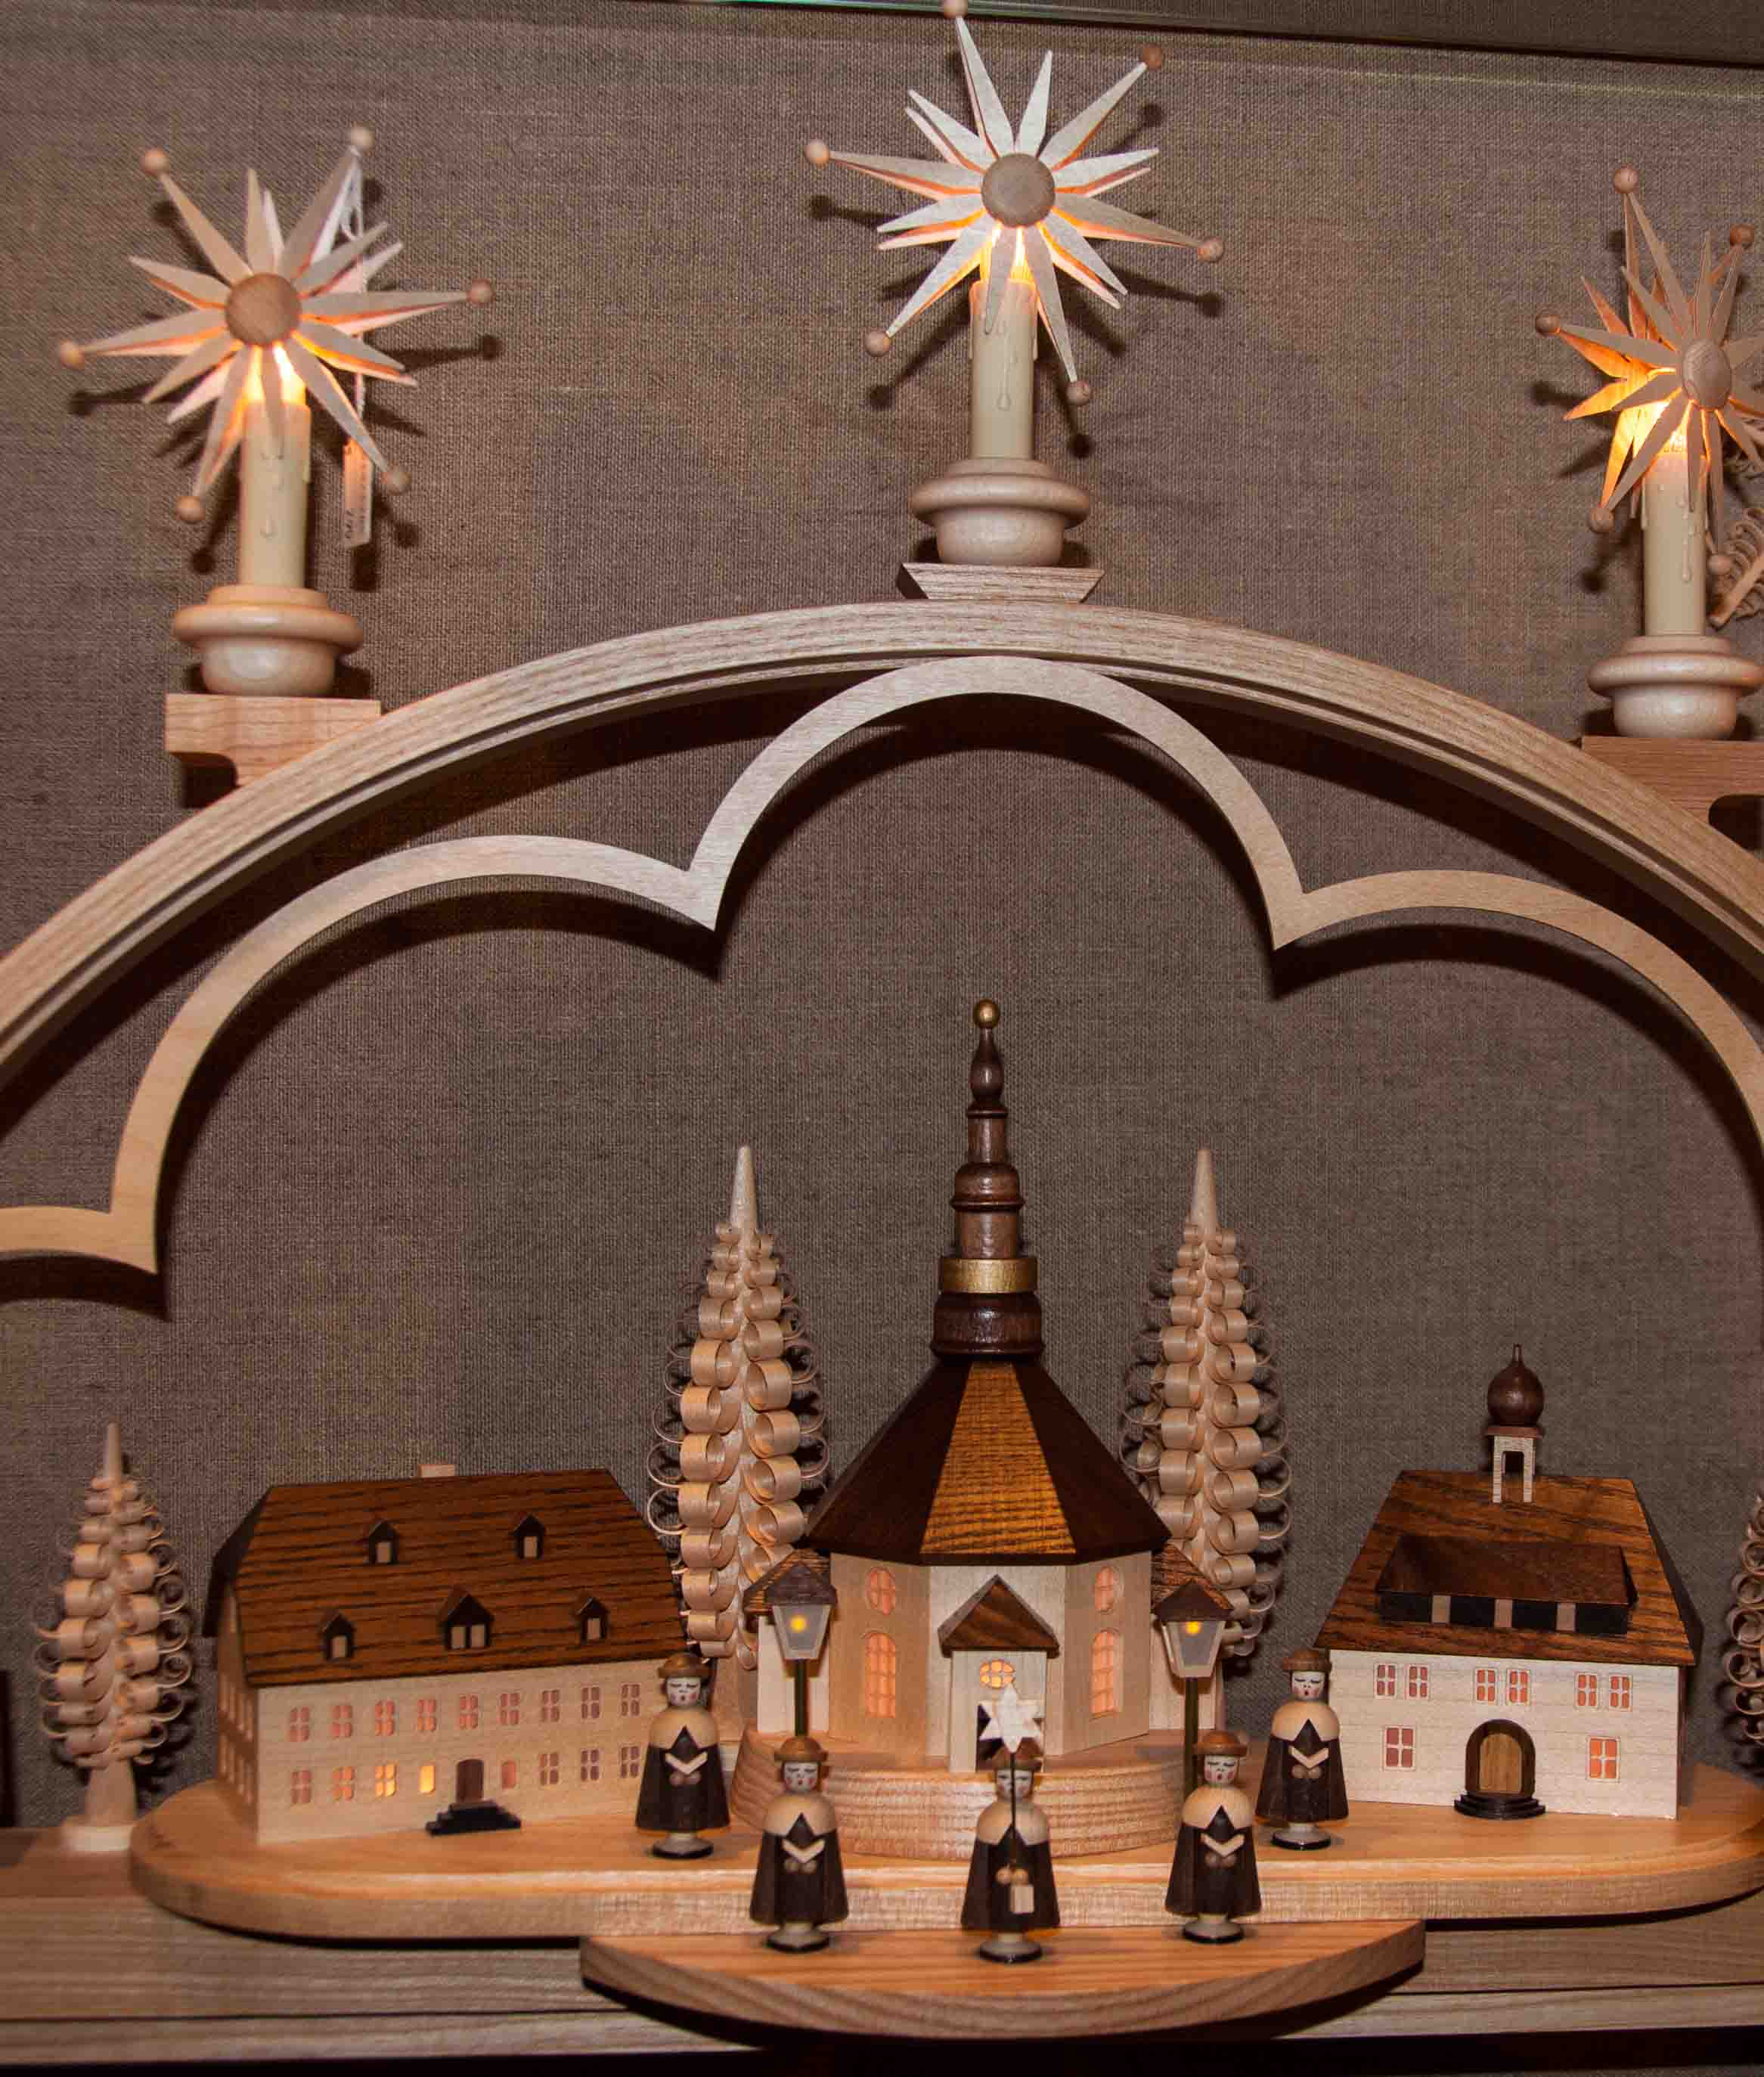 Shopping for christmas decorations in germany buckettripper for Arch candle christmas decoration